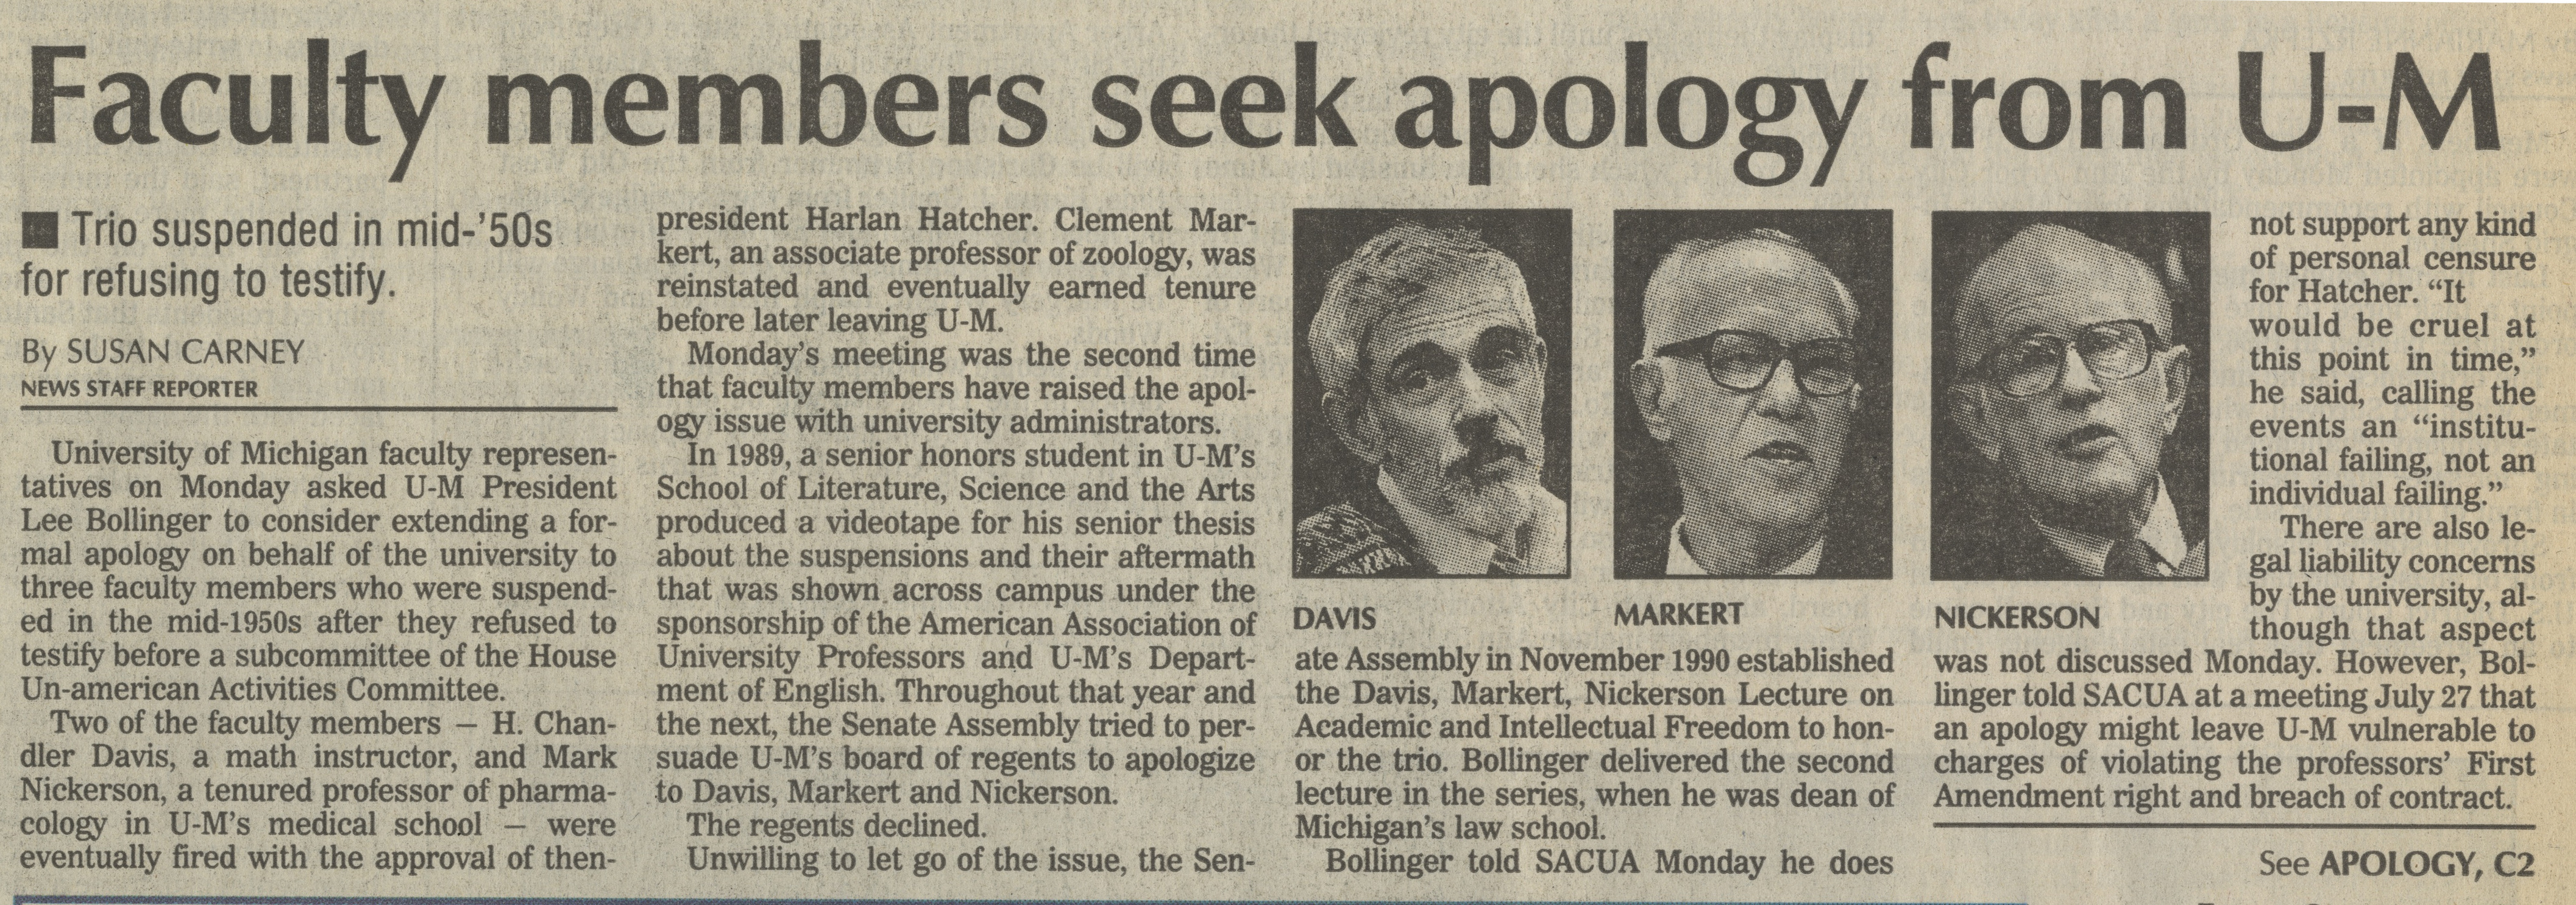 Faculty Members Seek Apology From U-M image